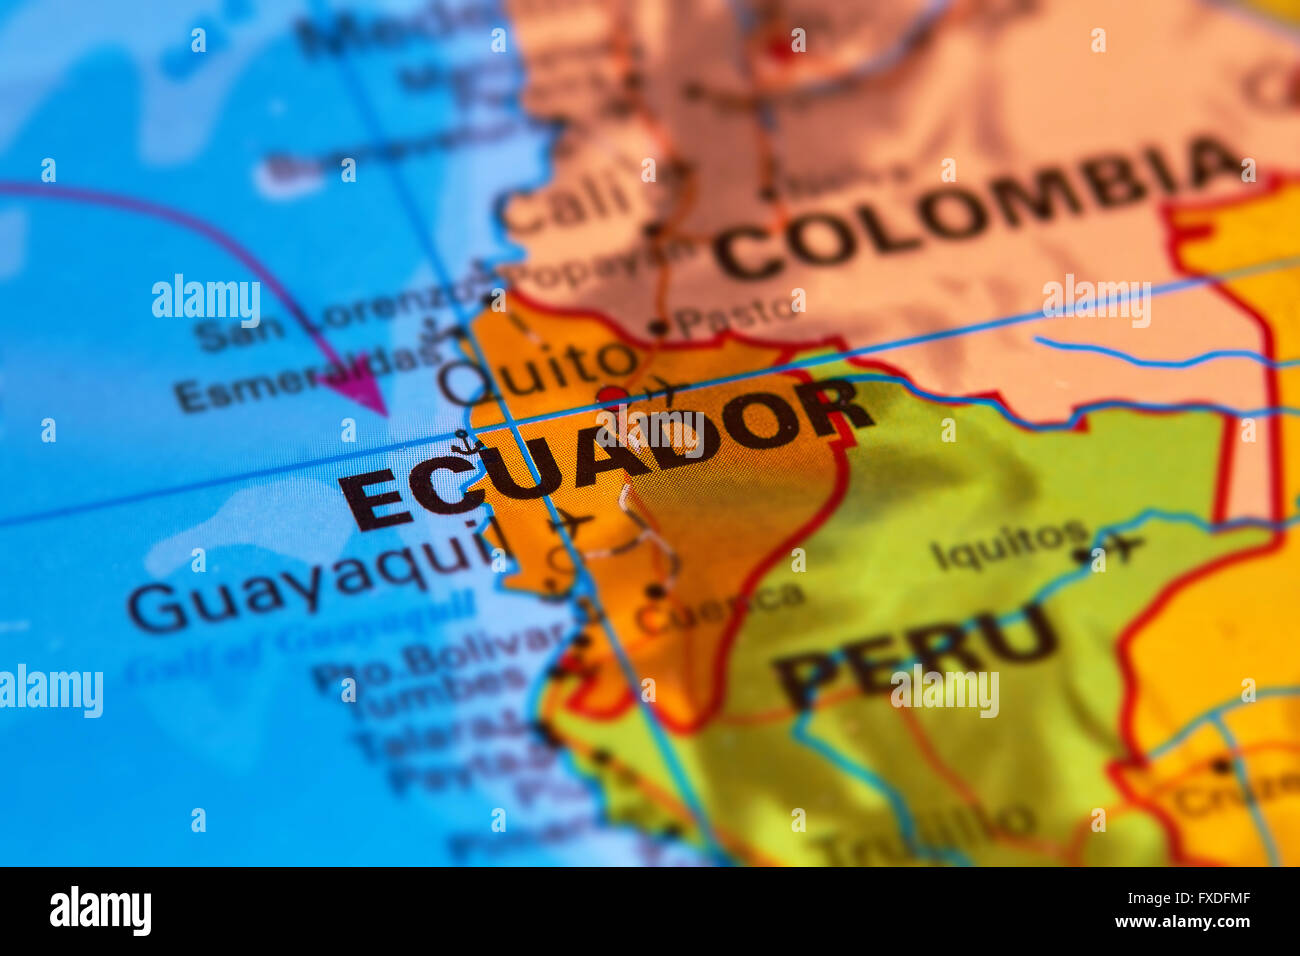 Ecuador And Capital City Quito On The World Map